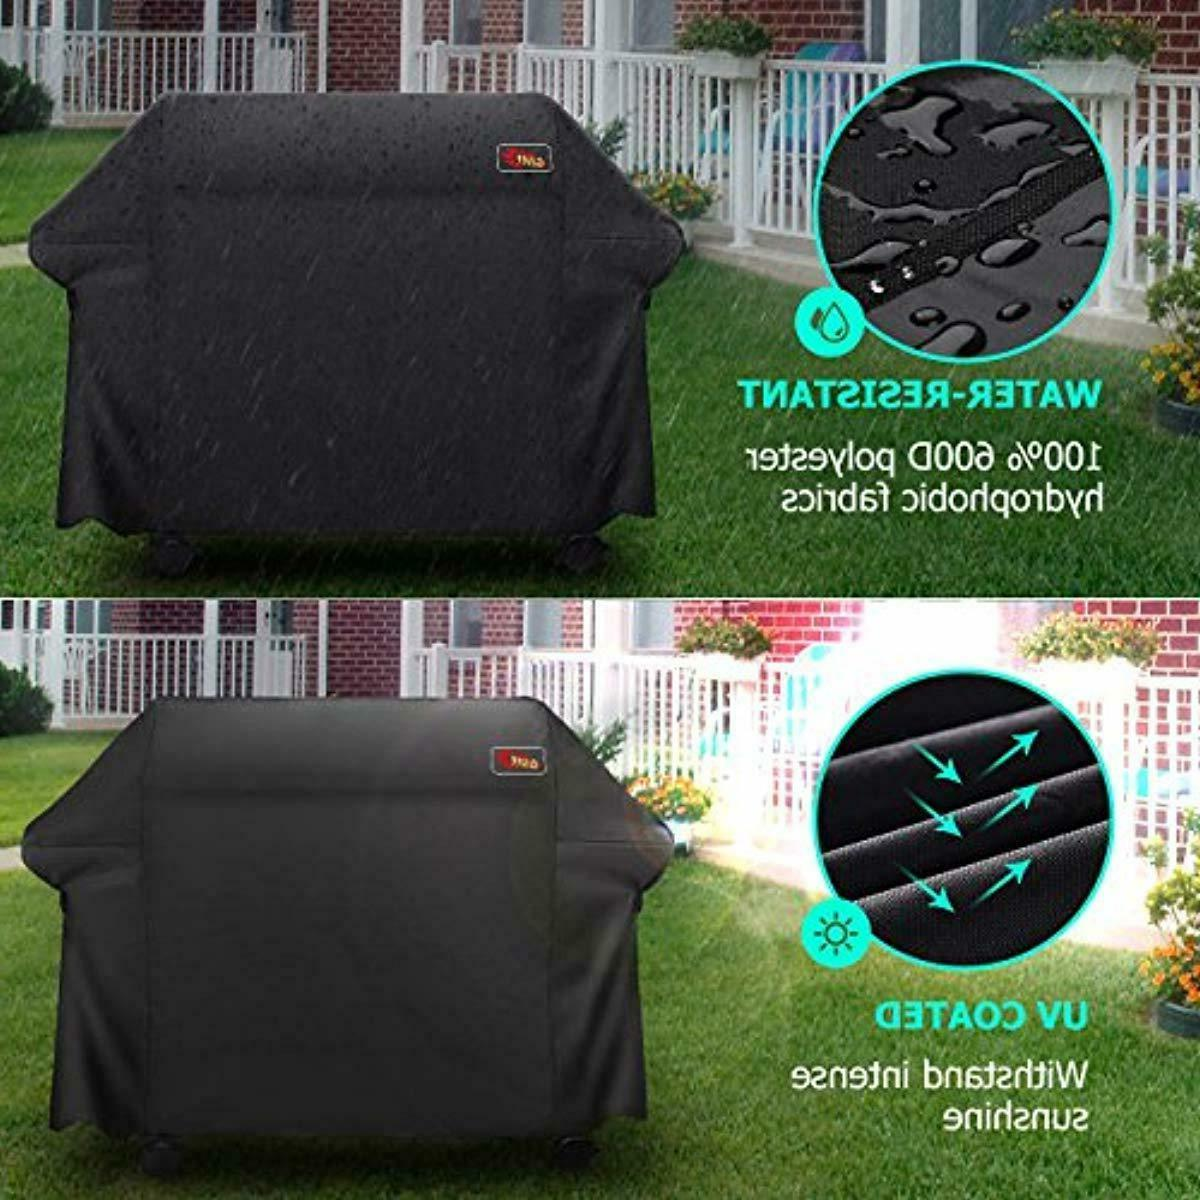 VicTsing 5+ Burner Grill Cover, Heavy Fits Brands Grill-Large